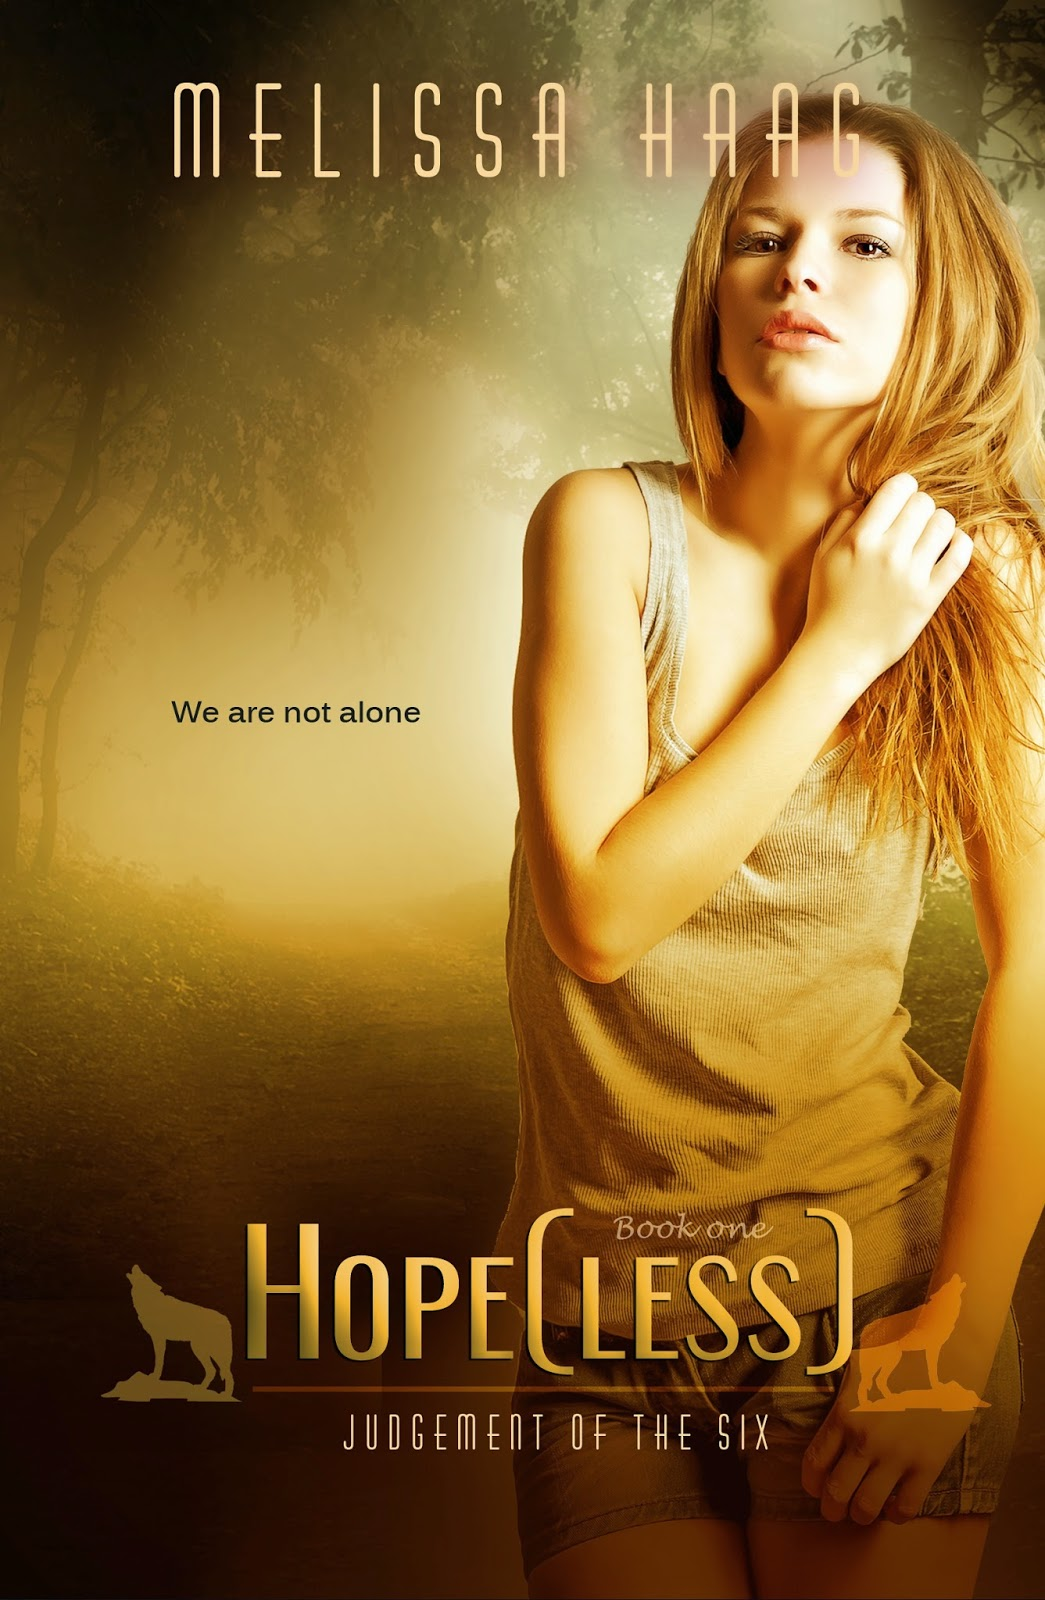 Hope(less) by Melissa Haag